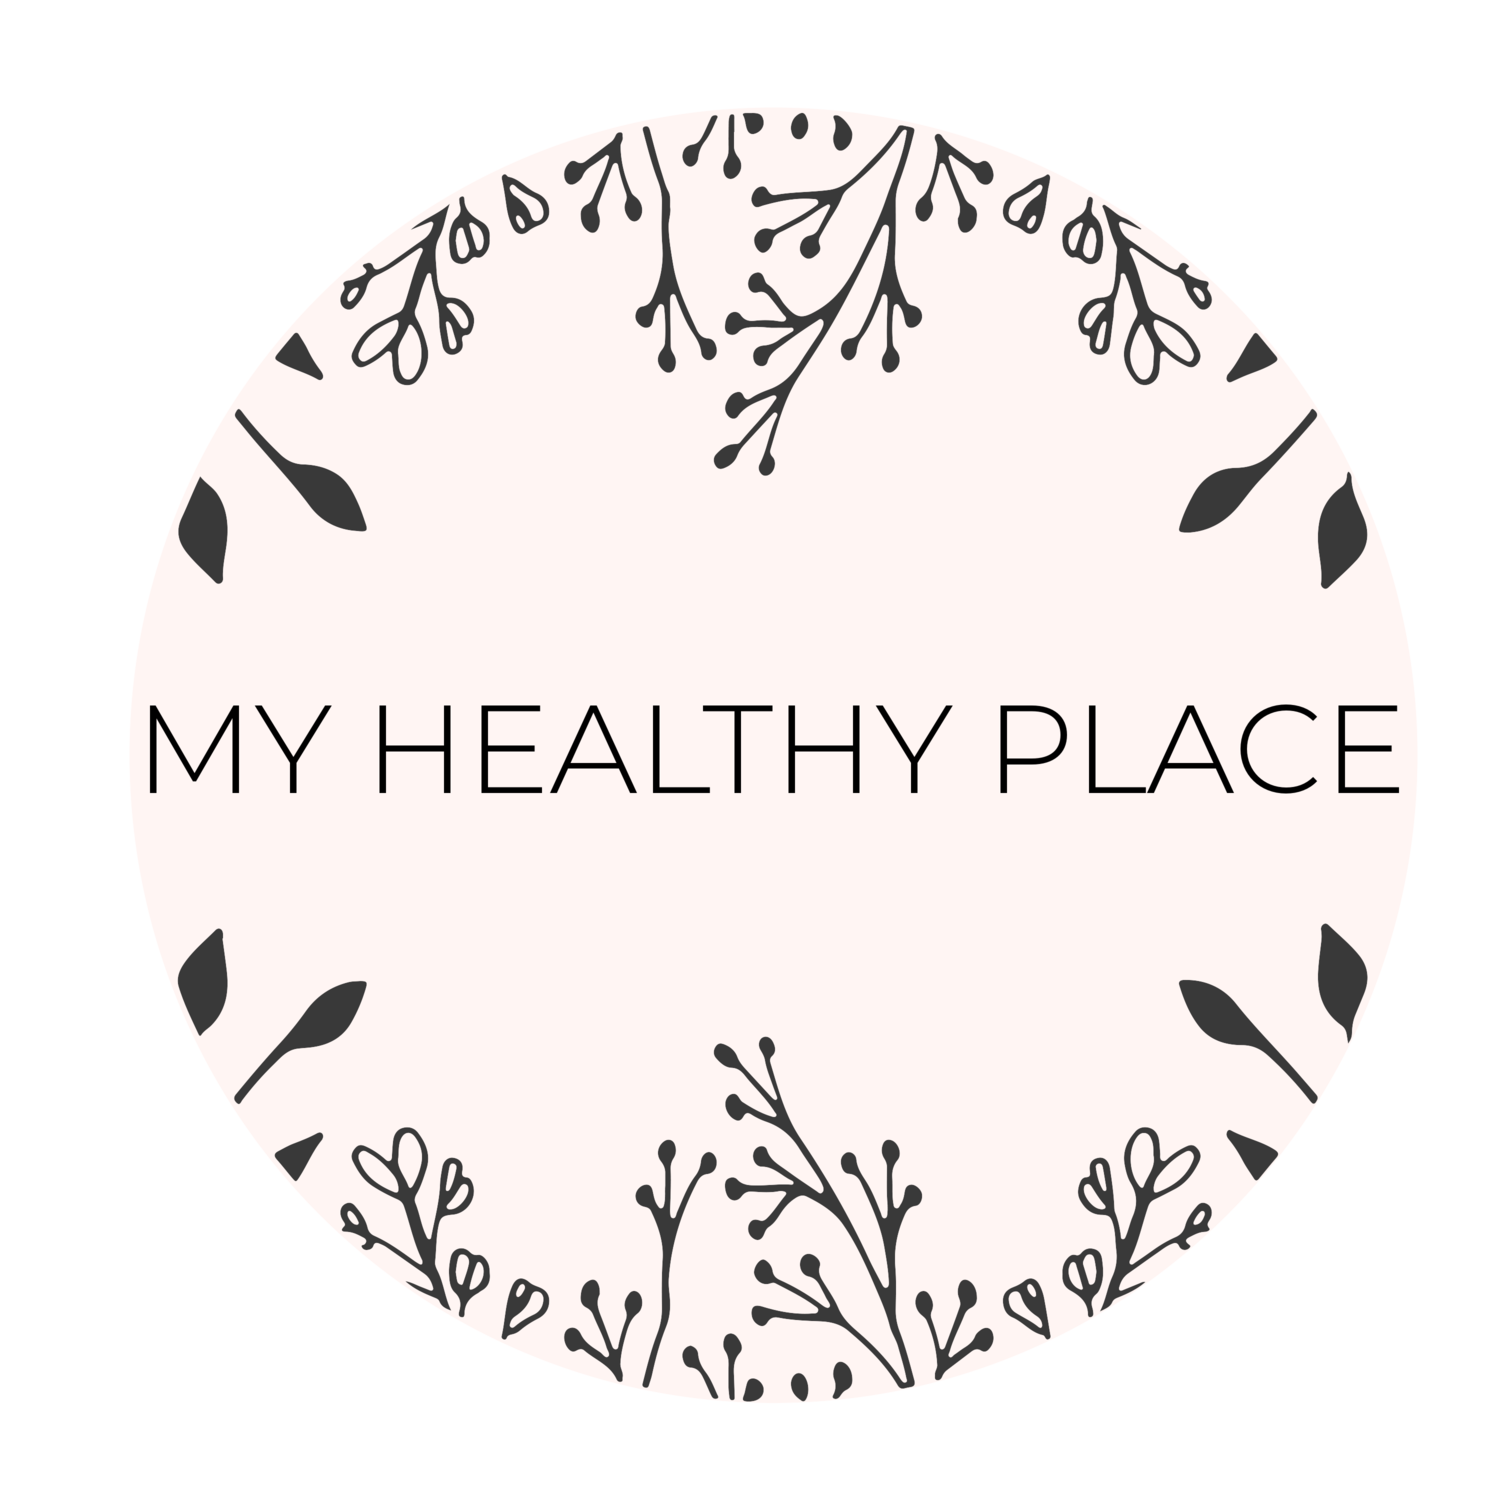 My Healthy Place